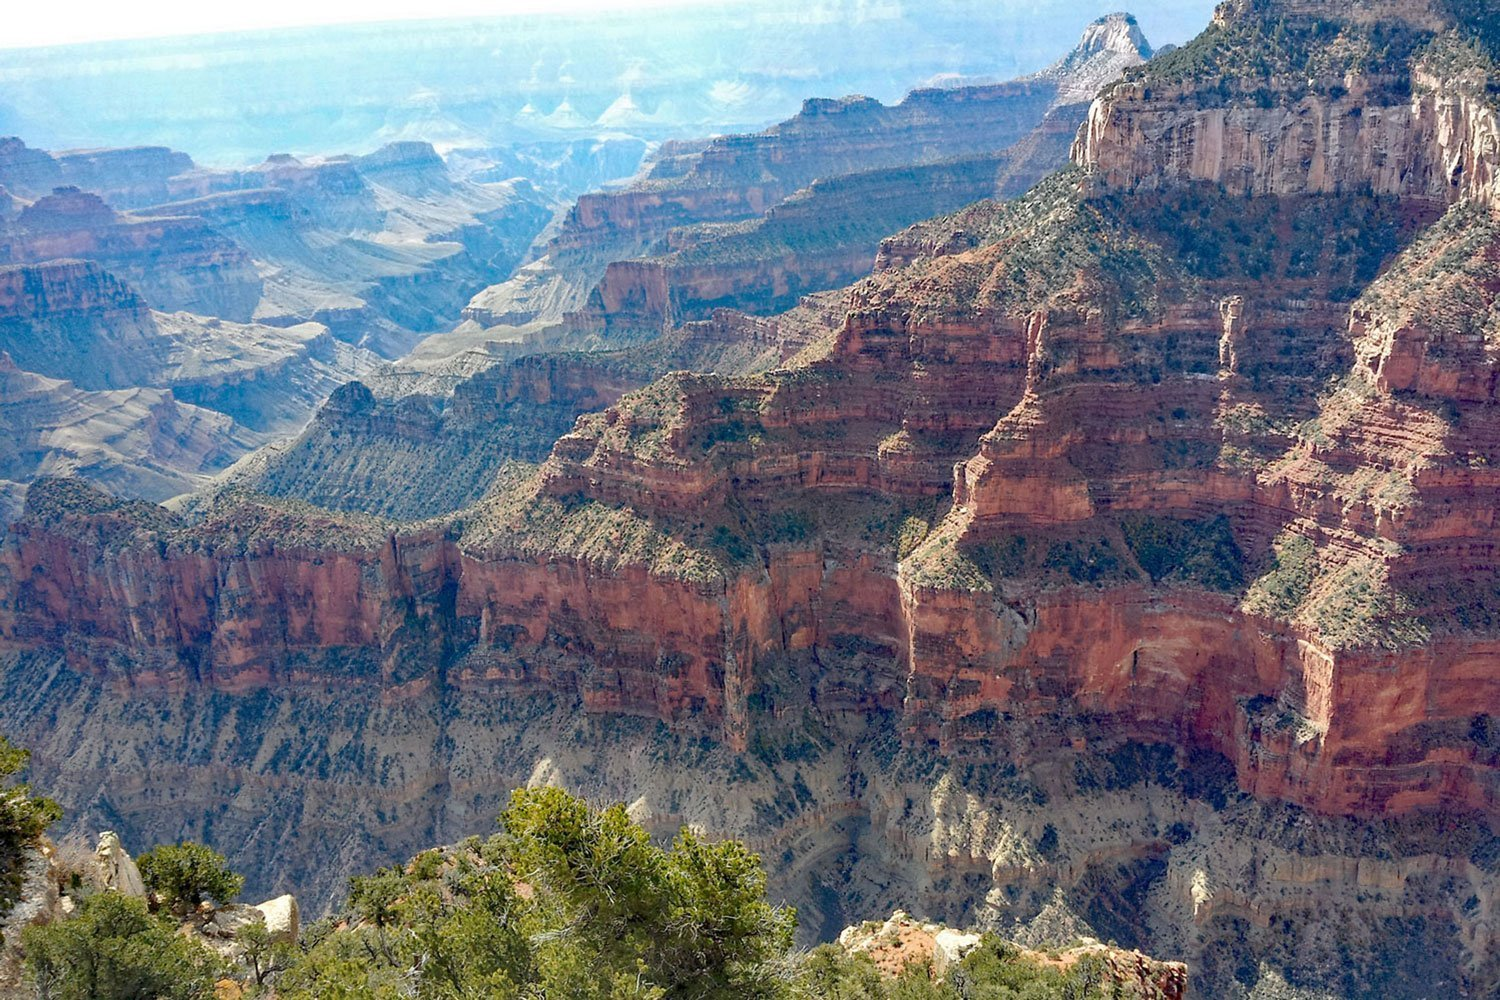 Canyon road trip takes you to Grand Canyon North Rim, Arizona